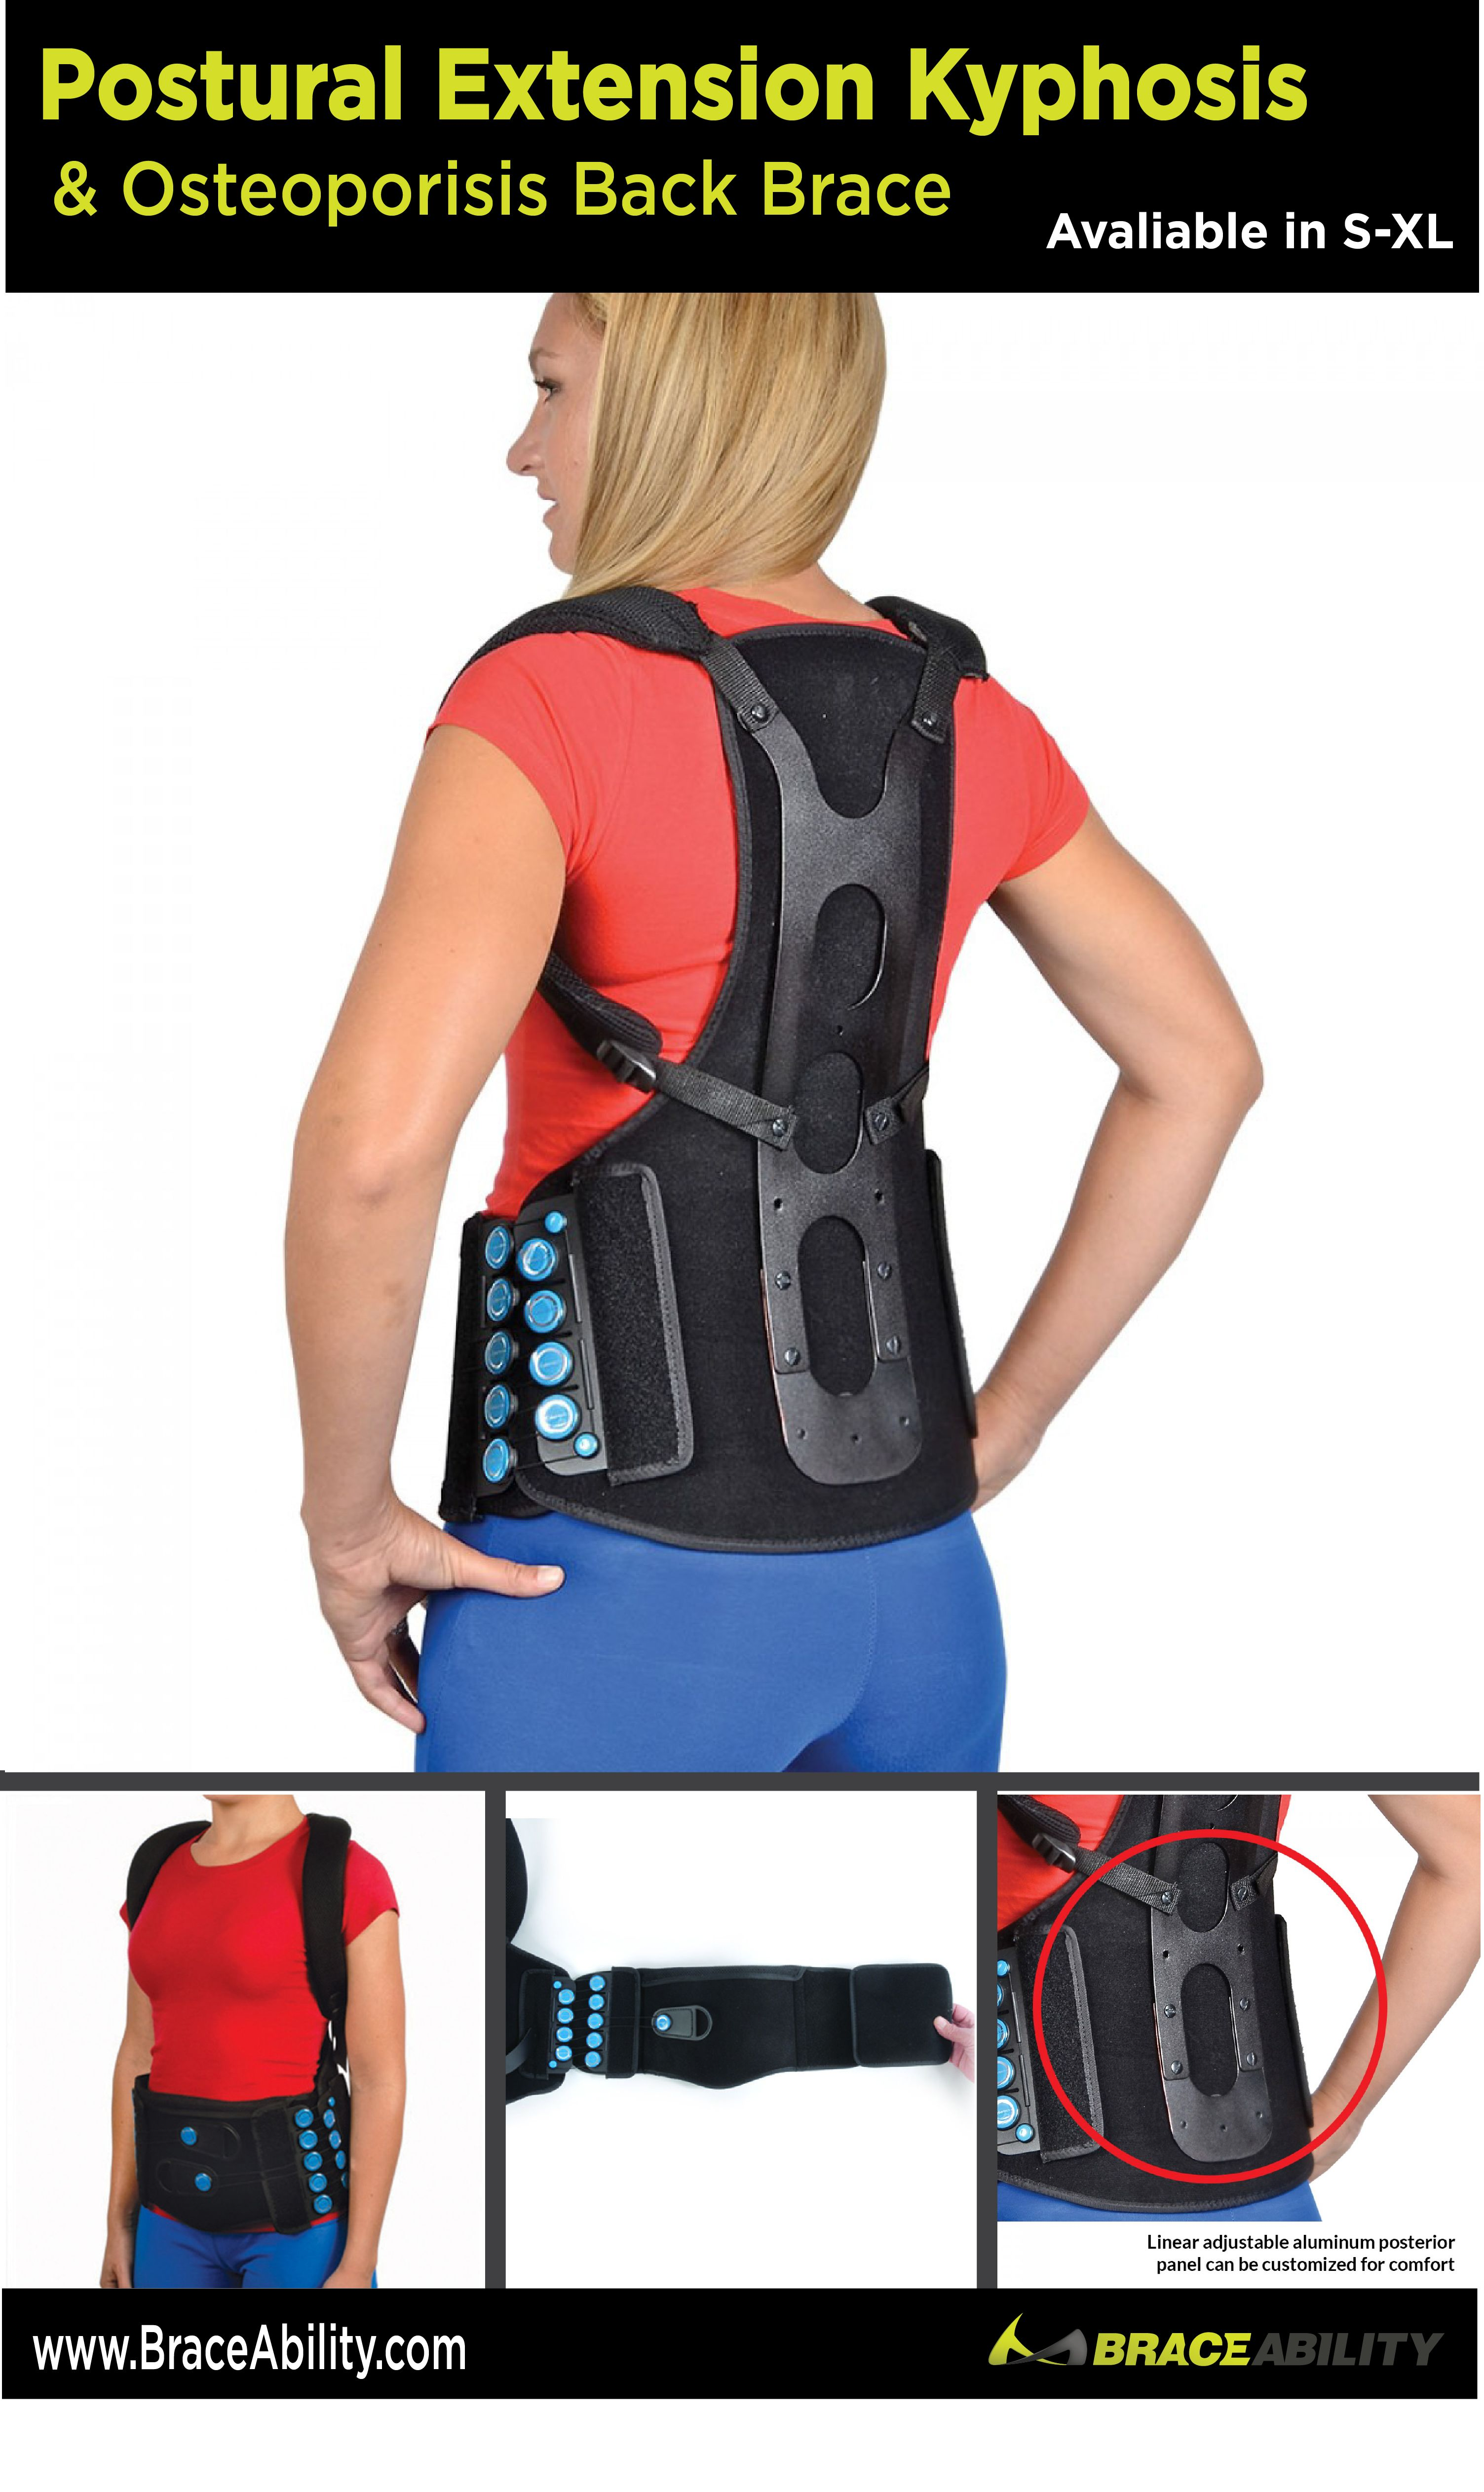 38++ Can a back brace help osteoporosis information